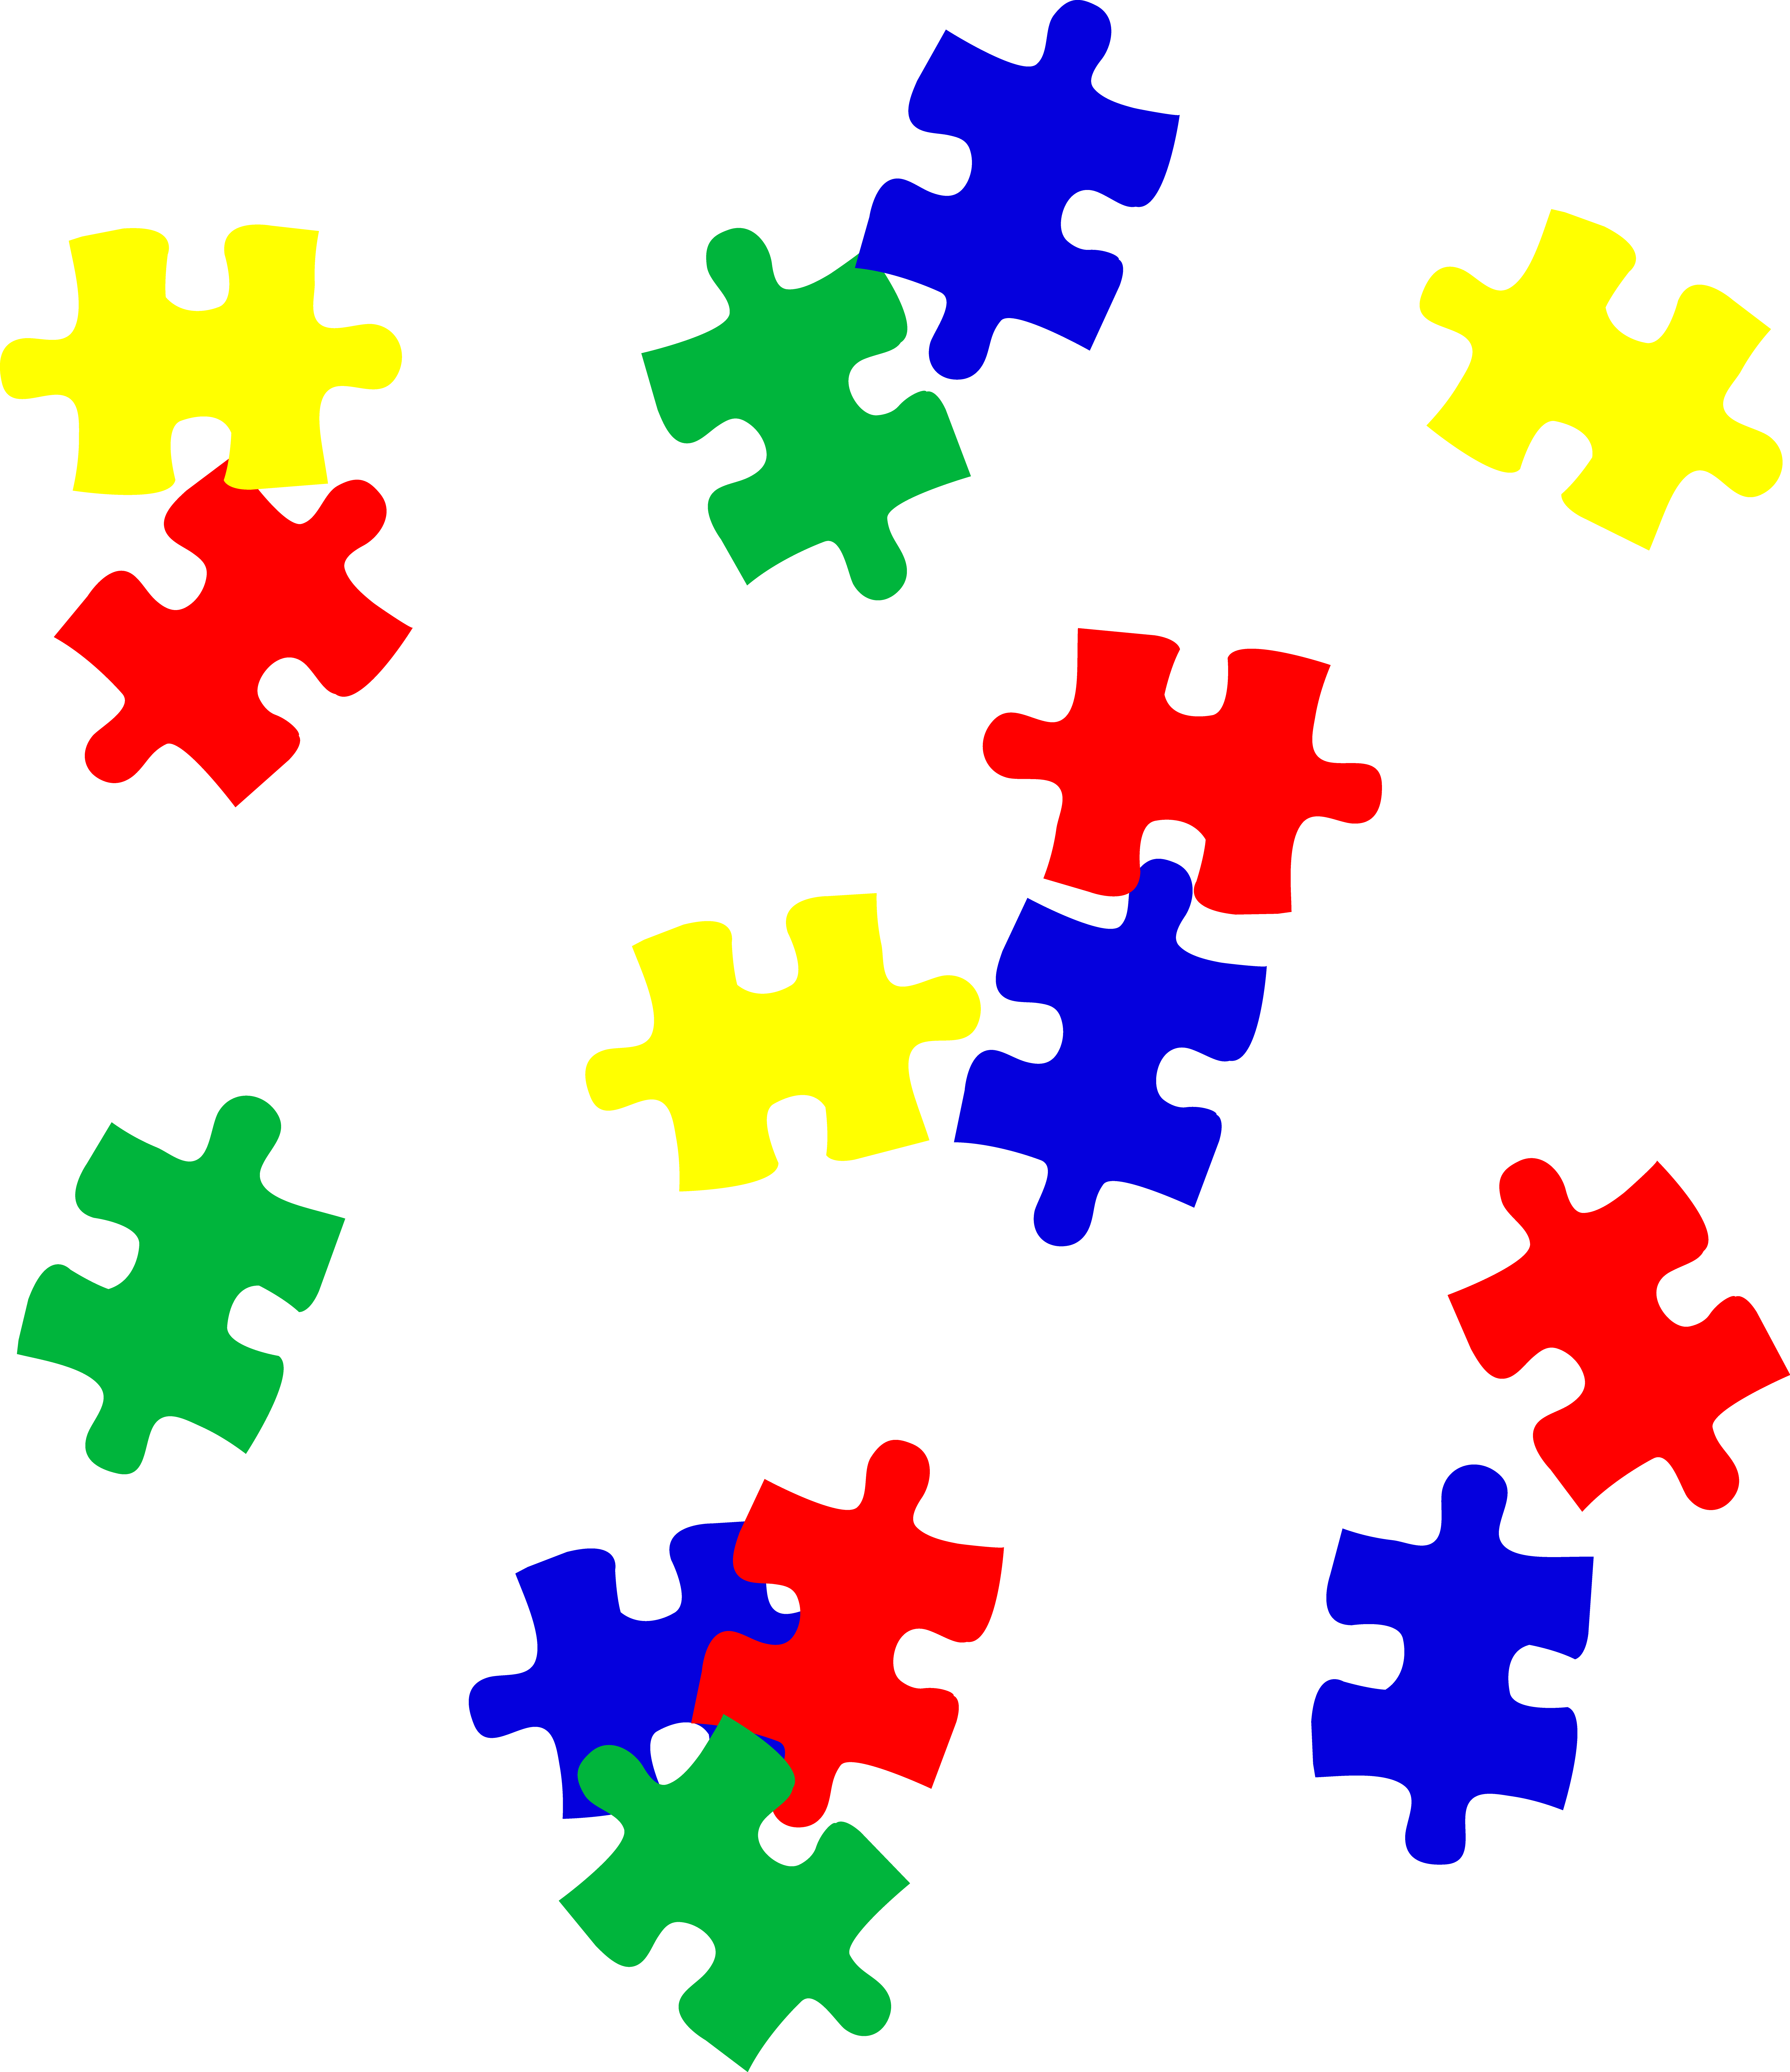 childrens puzzle pieces scattered clip art sweet clip art rh m sweetclipart com puzzle clip art for powerpoint slides puzzle clip art substance use prevention